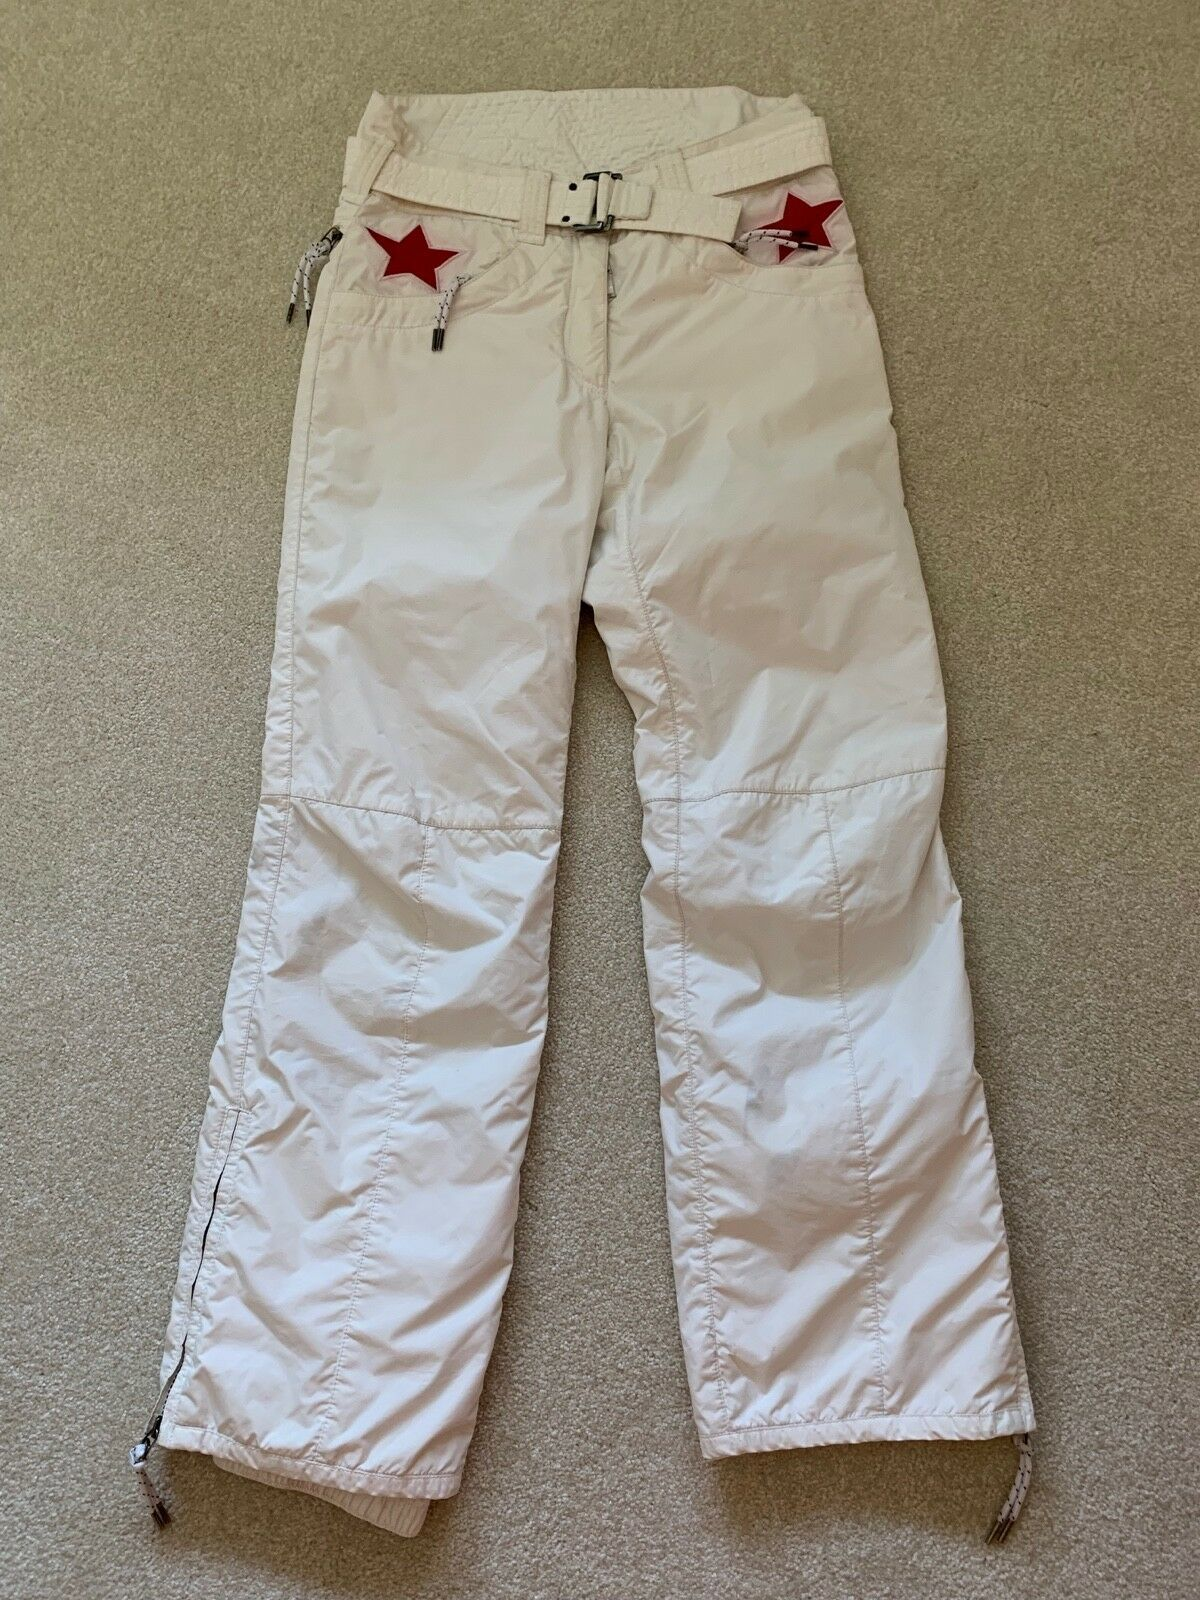 JSX. JET SET St. Moritz White with Red Star Ski Pants, Sz.1 Purchased in Gorsuch